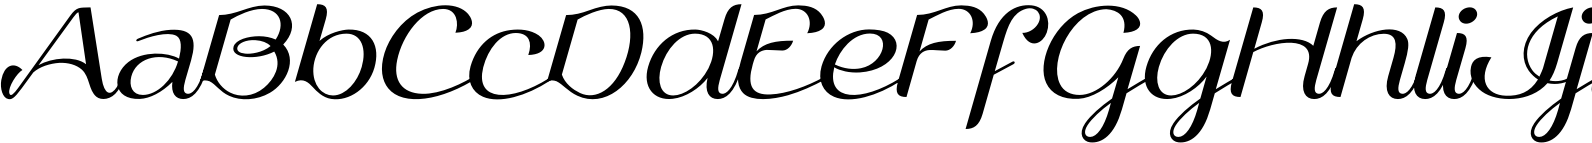 Vailsnick Italic